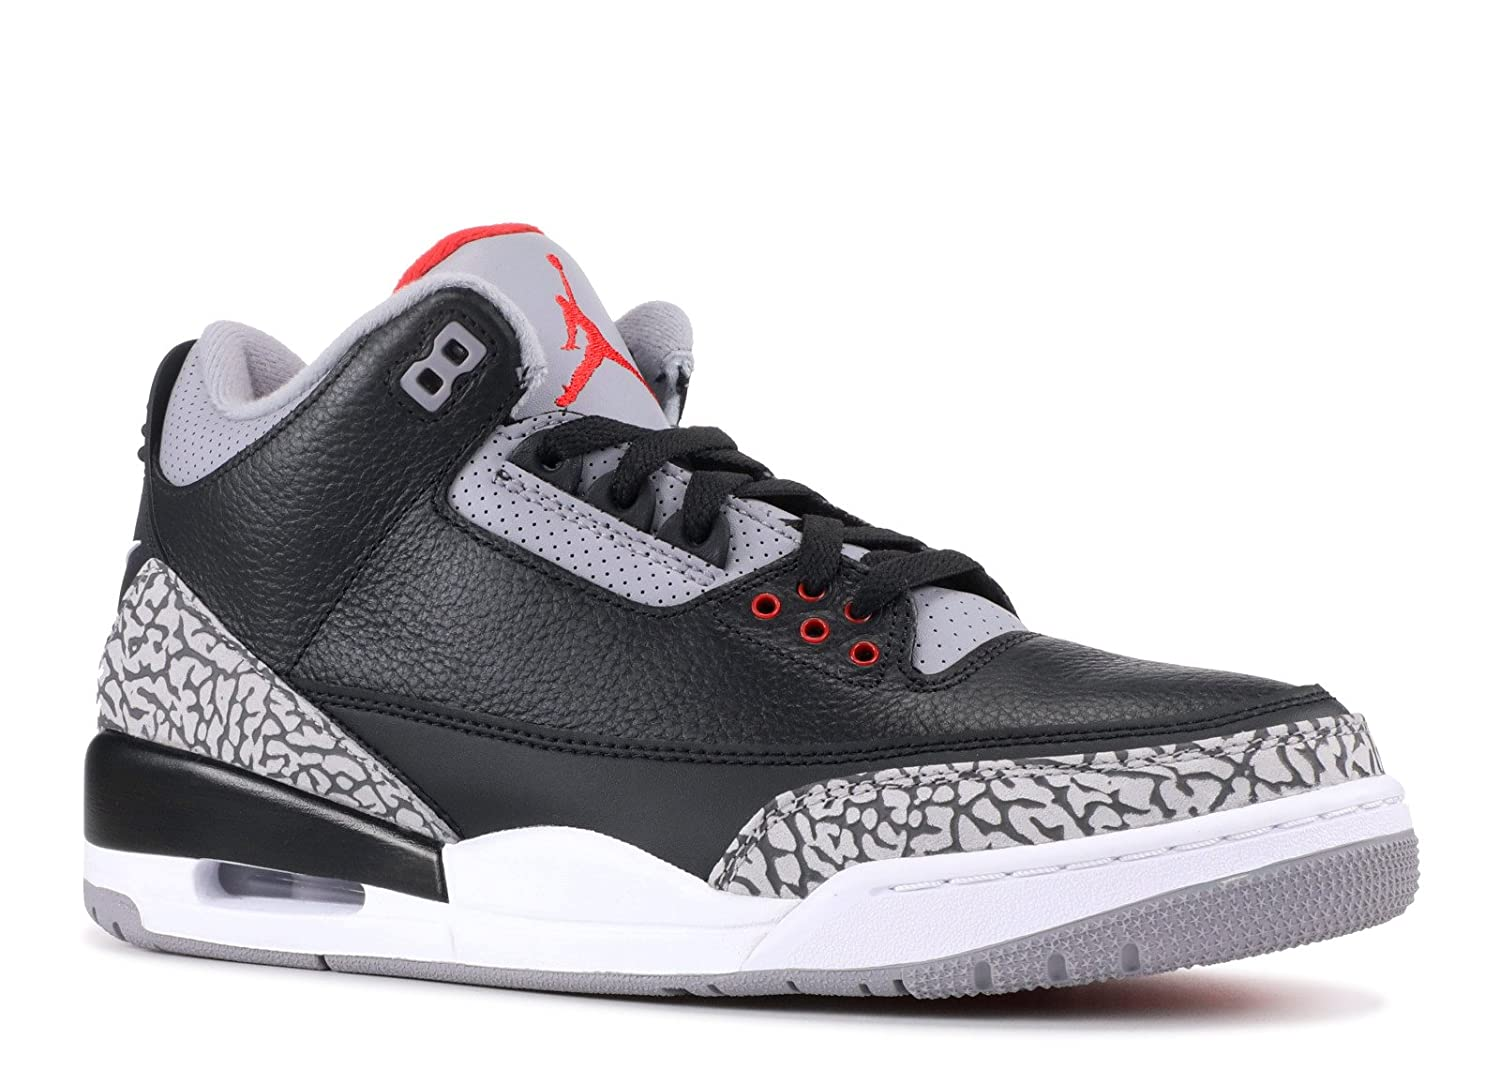 huge selection of 69b9f aa0d2 Air Jordan 3 Og Retro Og 'Black Cement 2018' - 854262-001 - Size 17